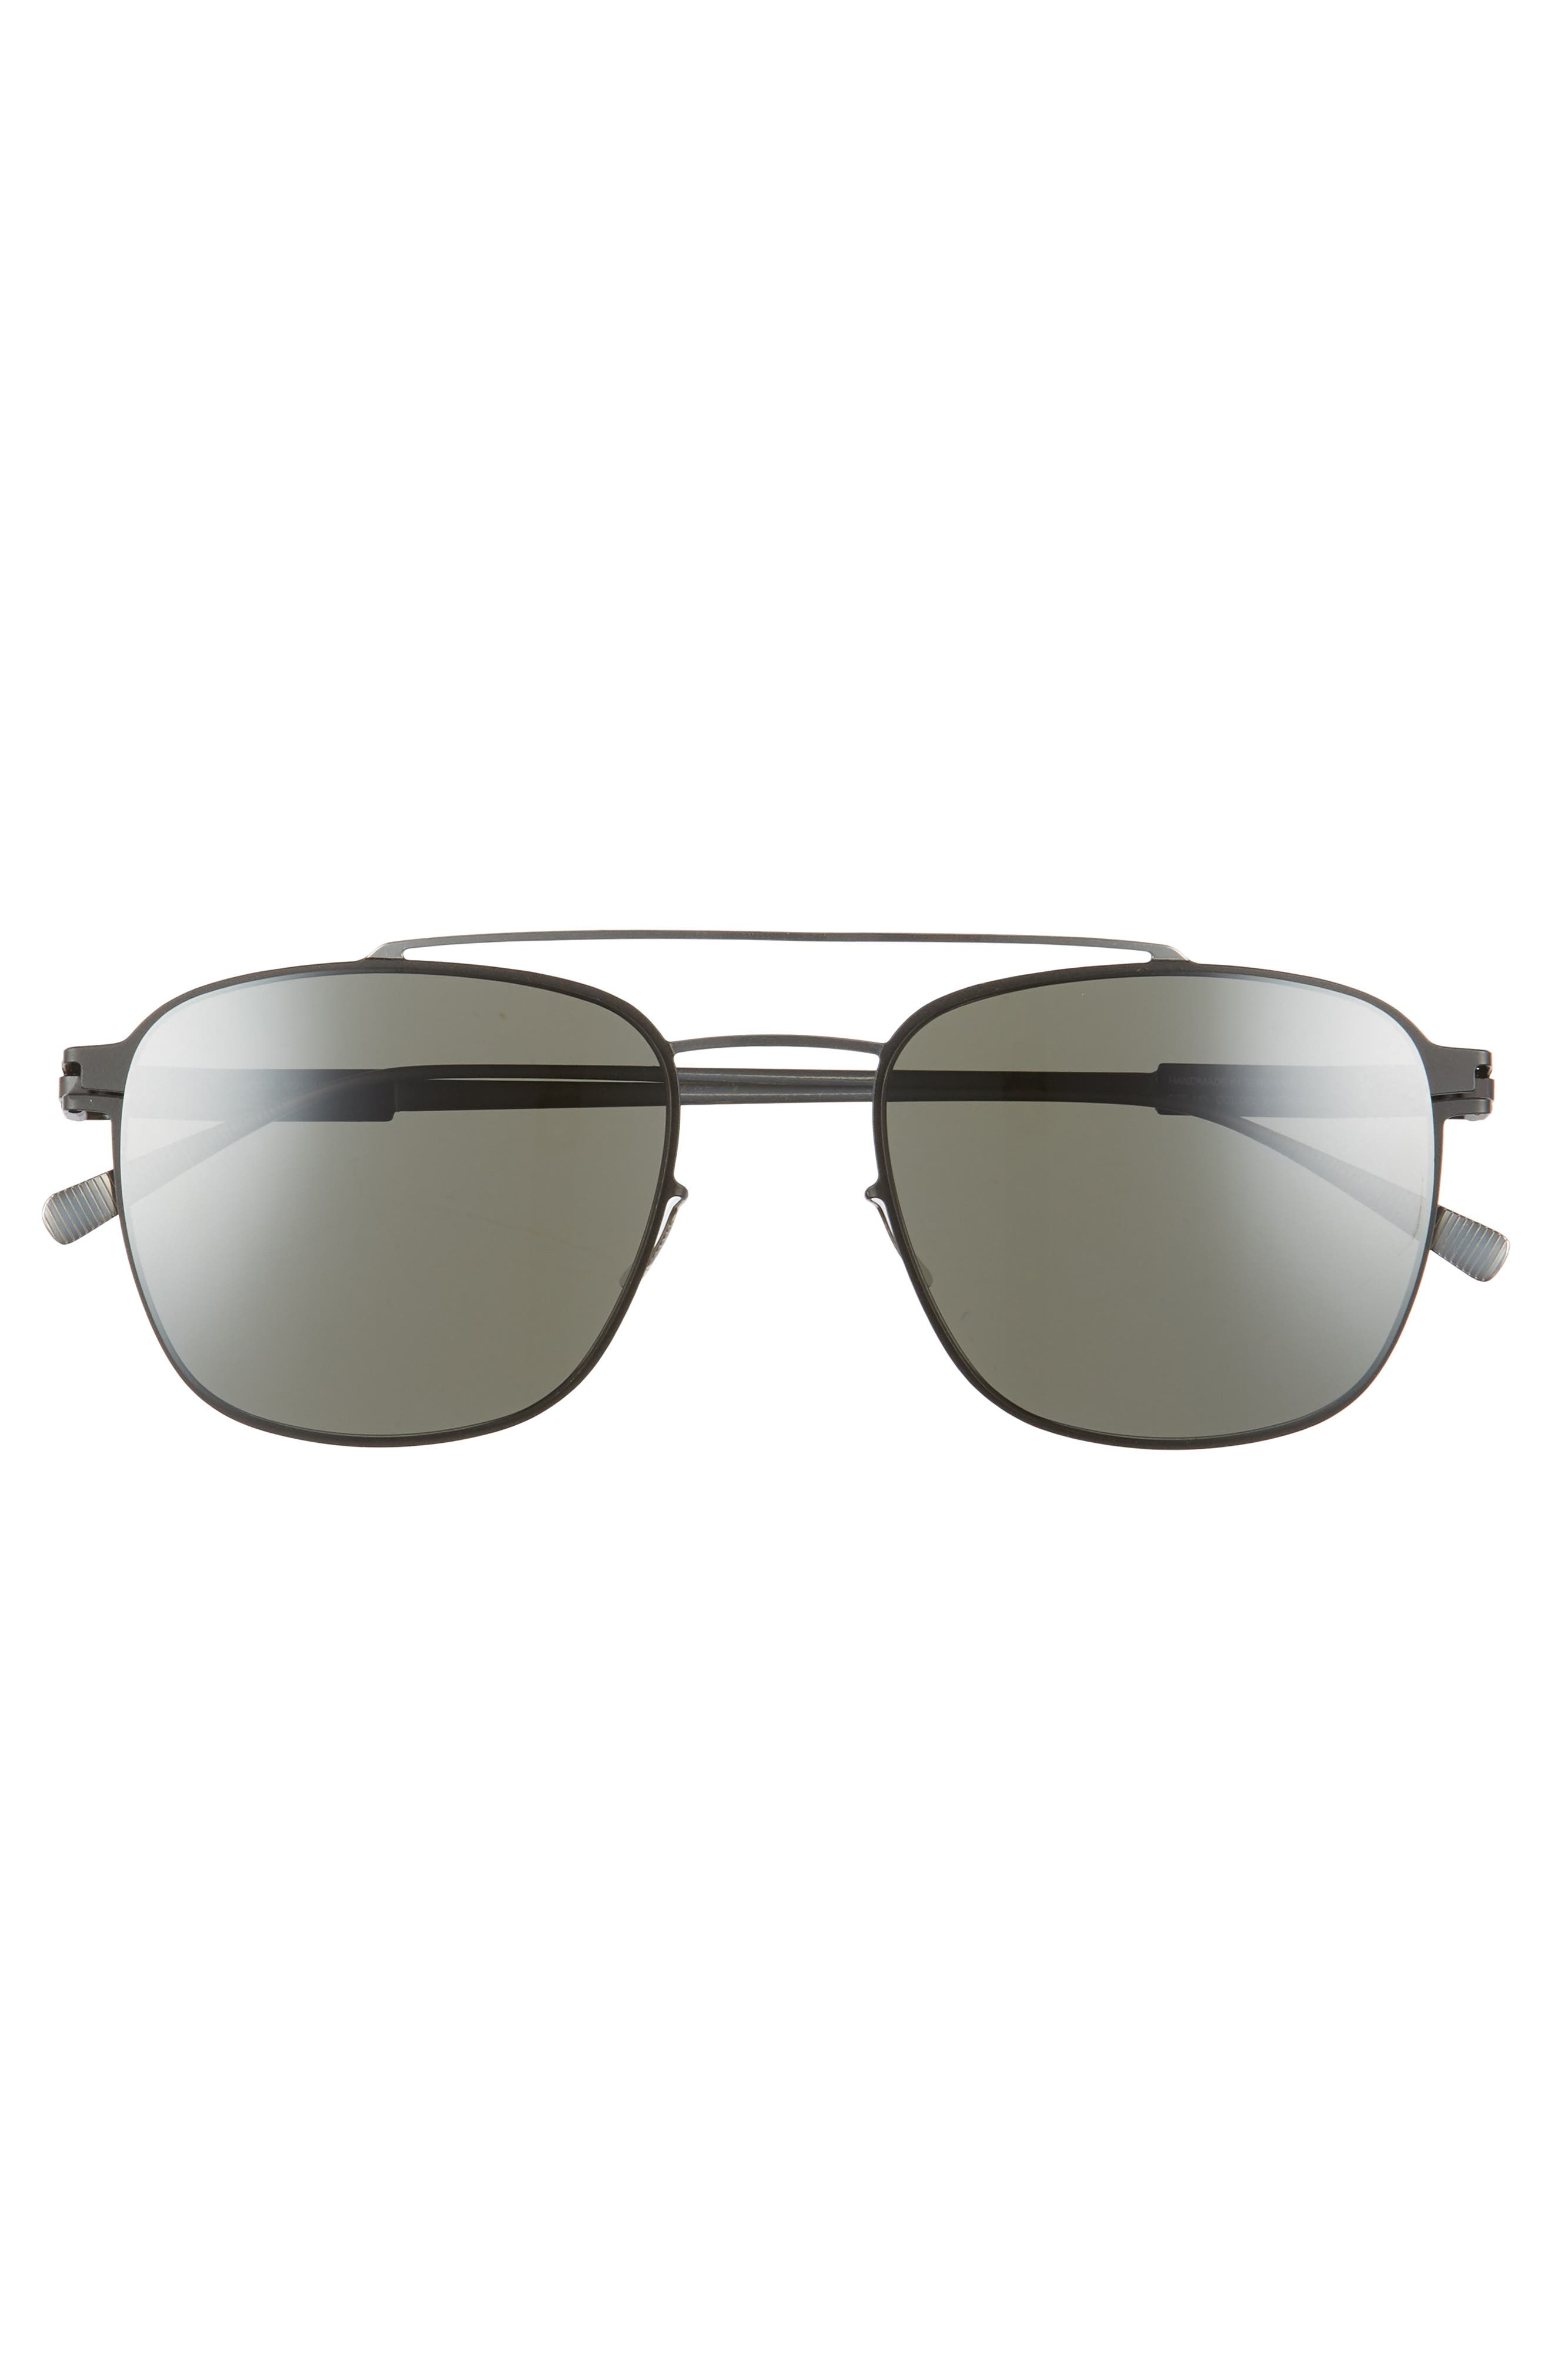 Hugh 52mm Mirrored Sunglasses,                             Alternate thumbnail 2, color,                             Silver/ Black